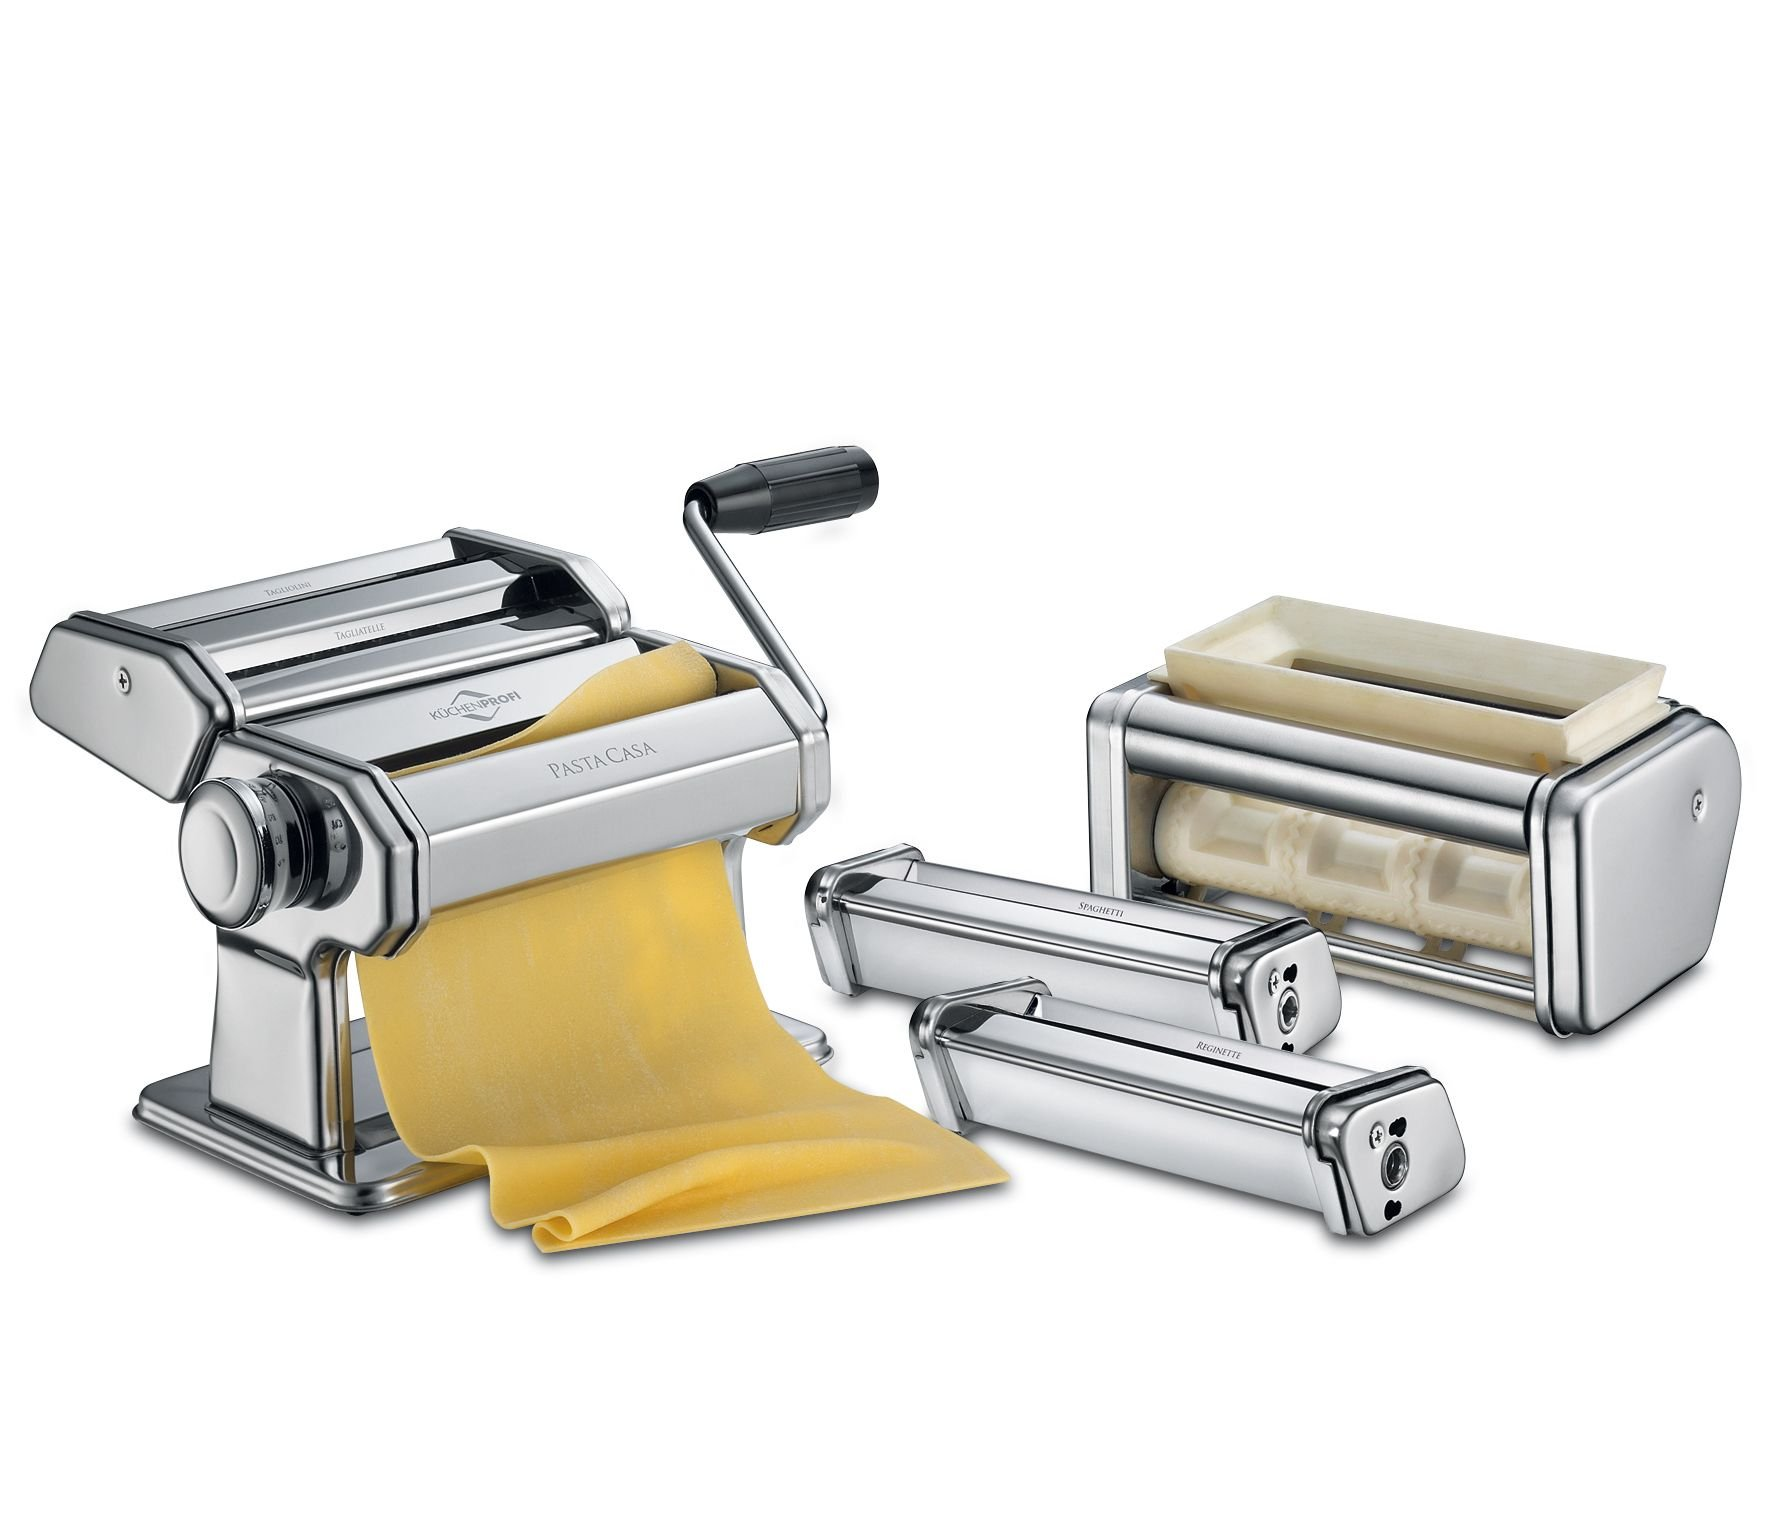 Küchenprofi PASTACASA - Classic Pasta Machine Set - With 3 Aluminium Rollers & Adjustable Thickness